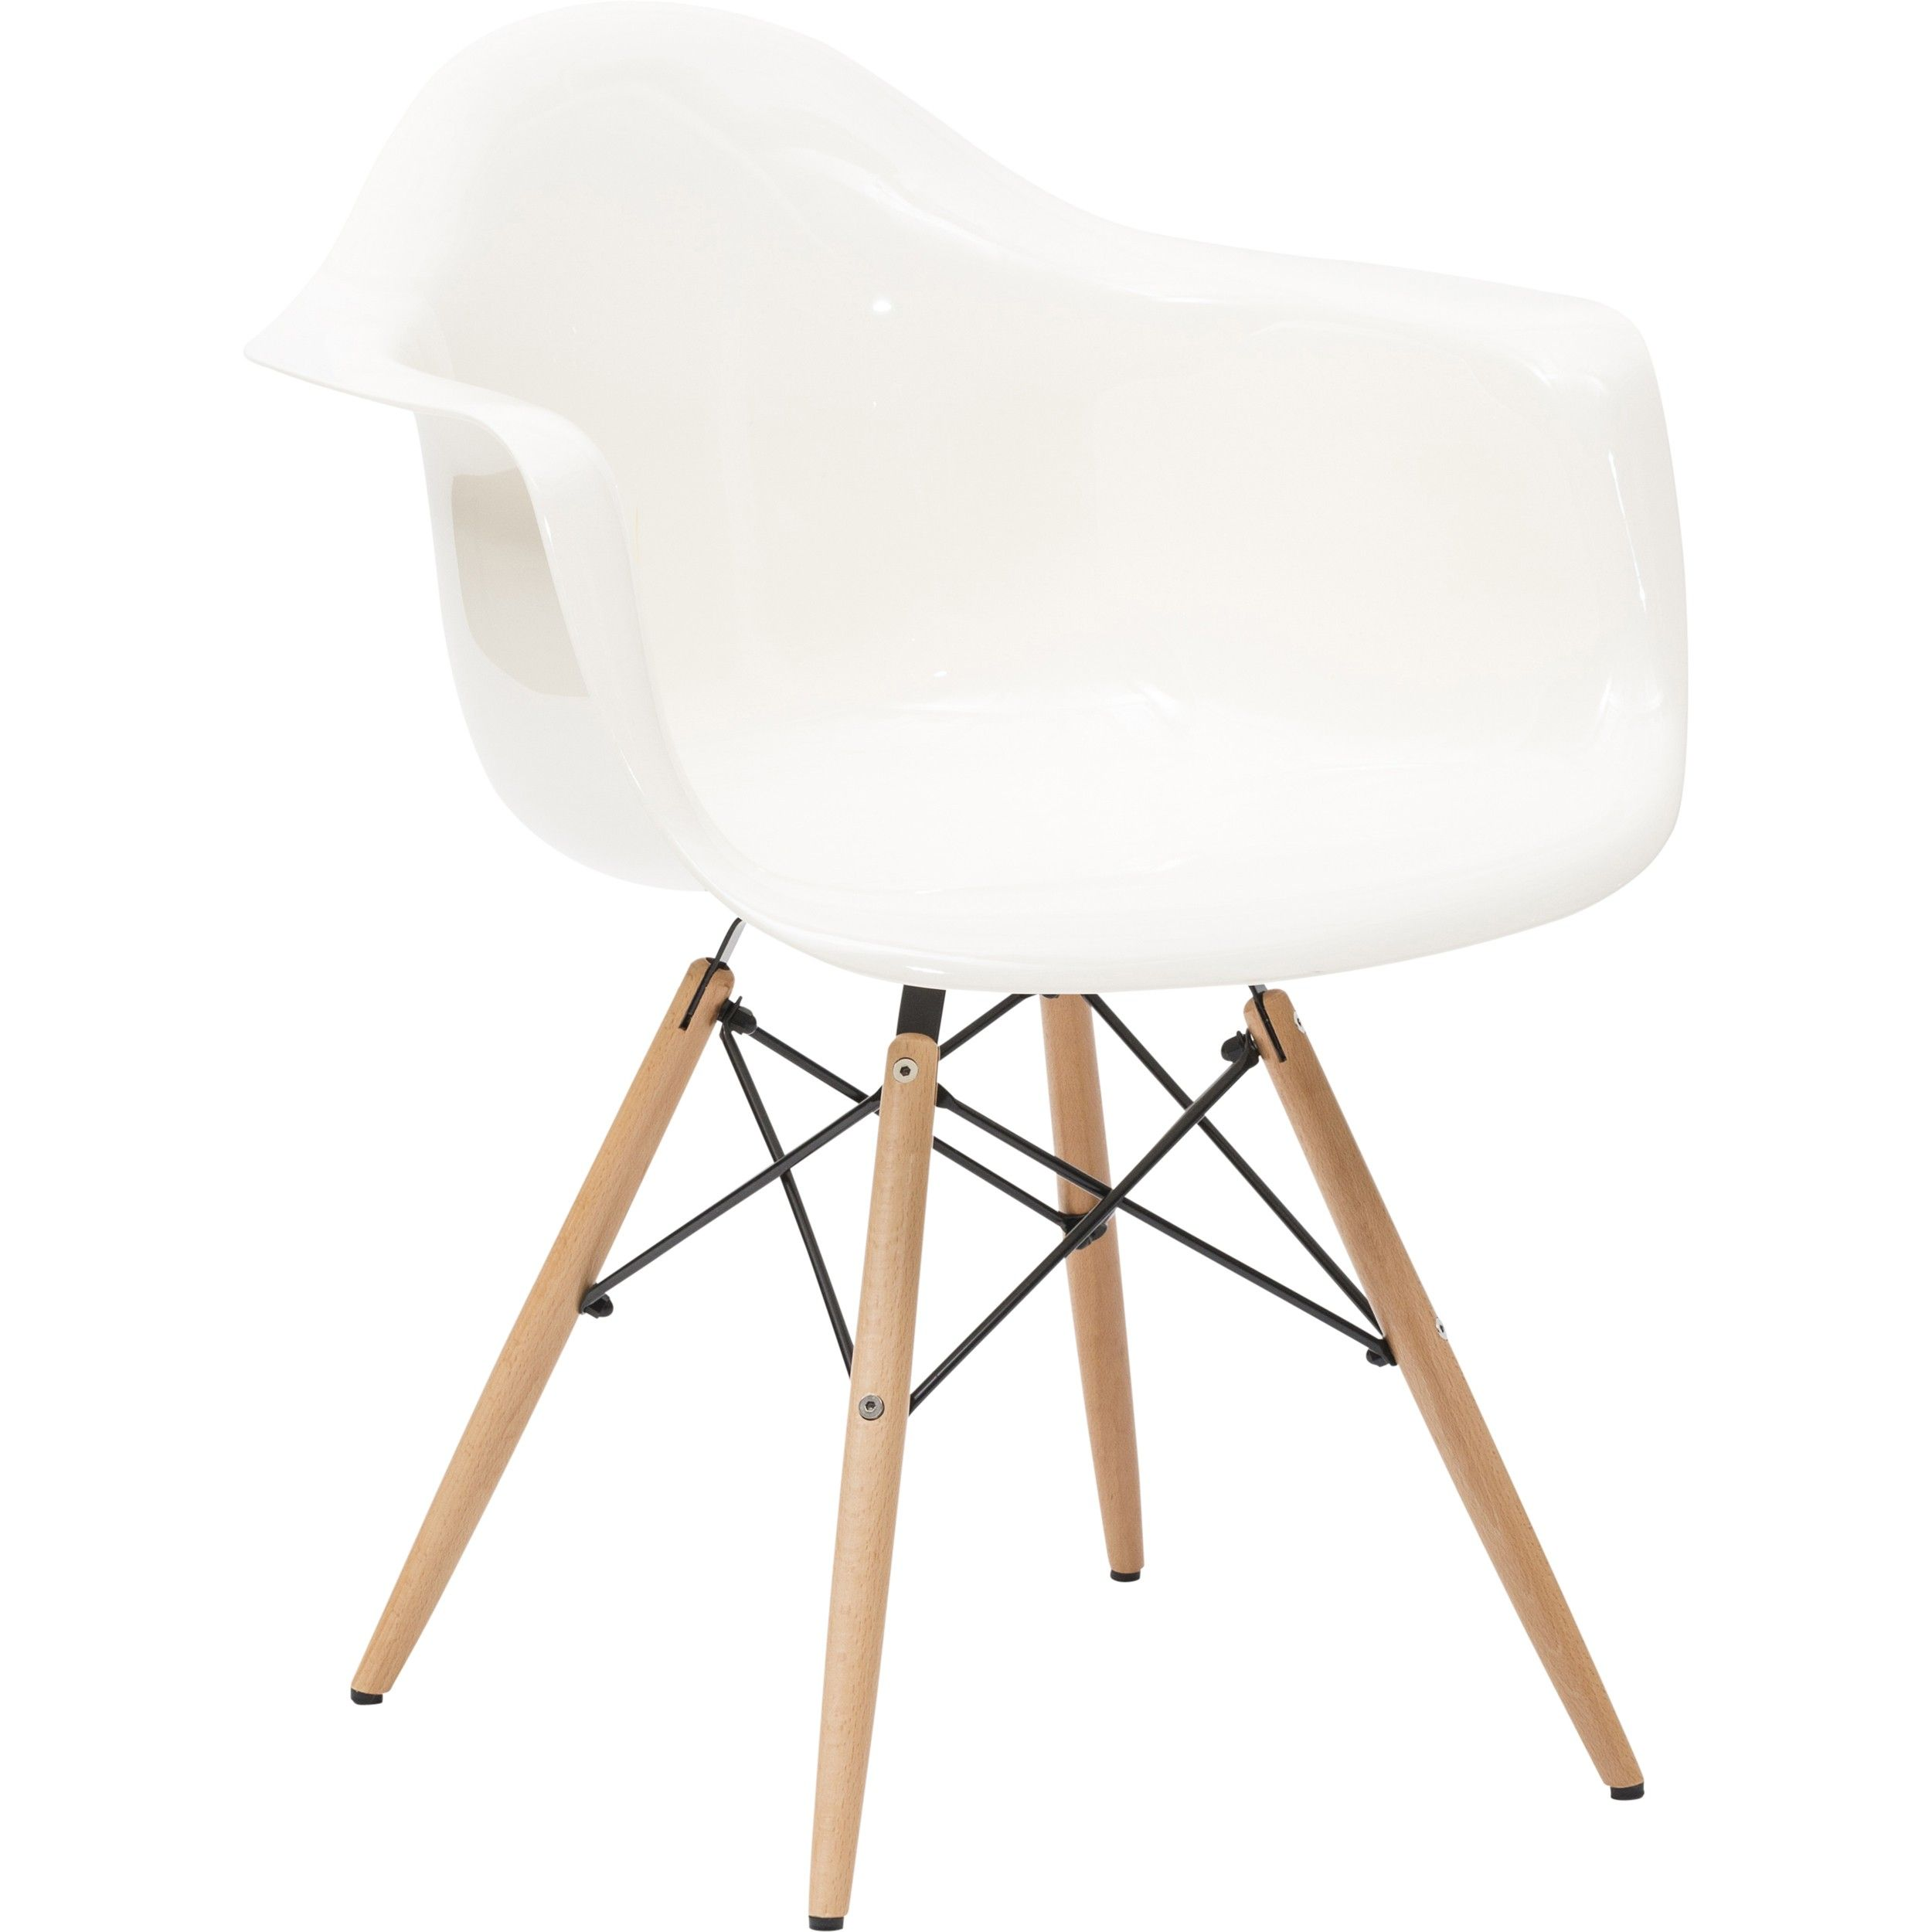 Hobby Lobby Table And Chairs Swivel Chair Height Adjustment These But Clear Were At Too Low For A